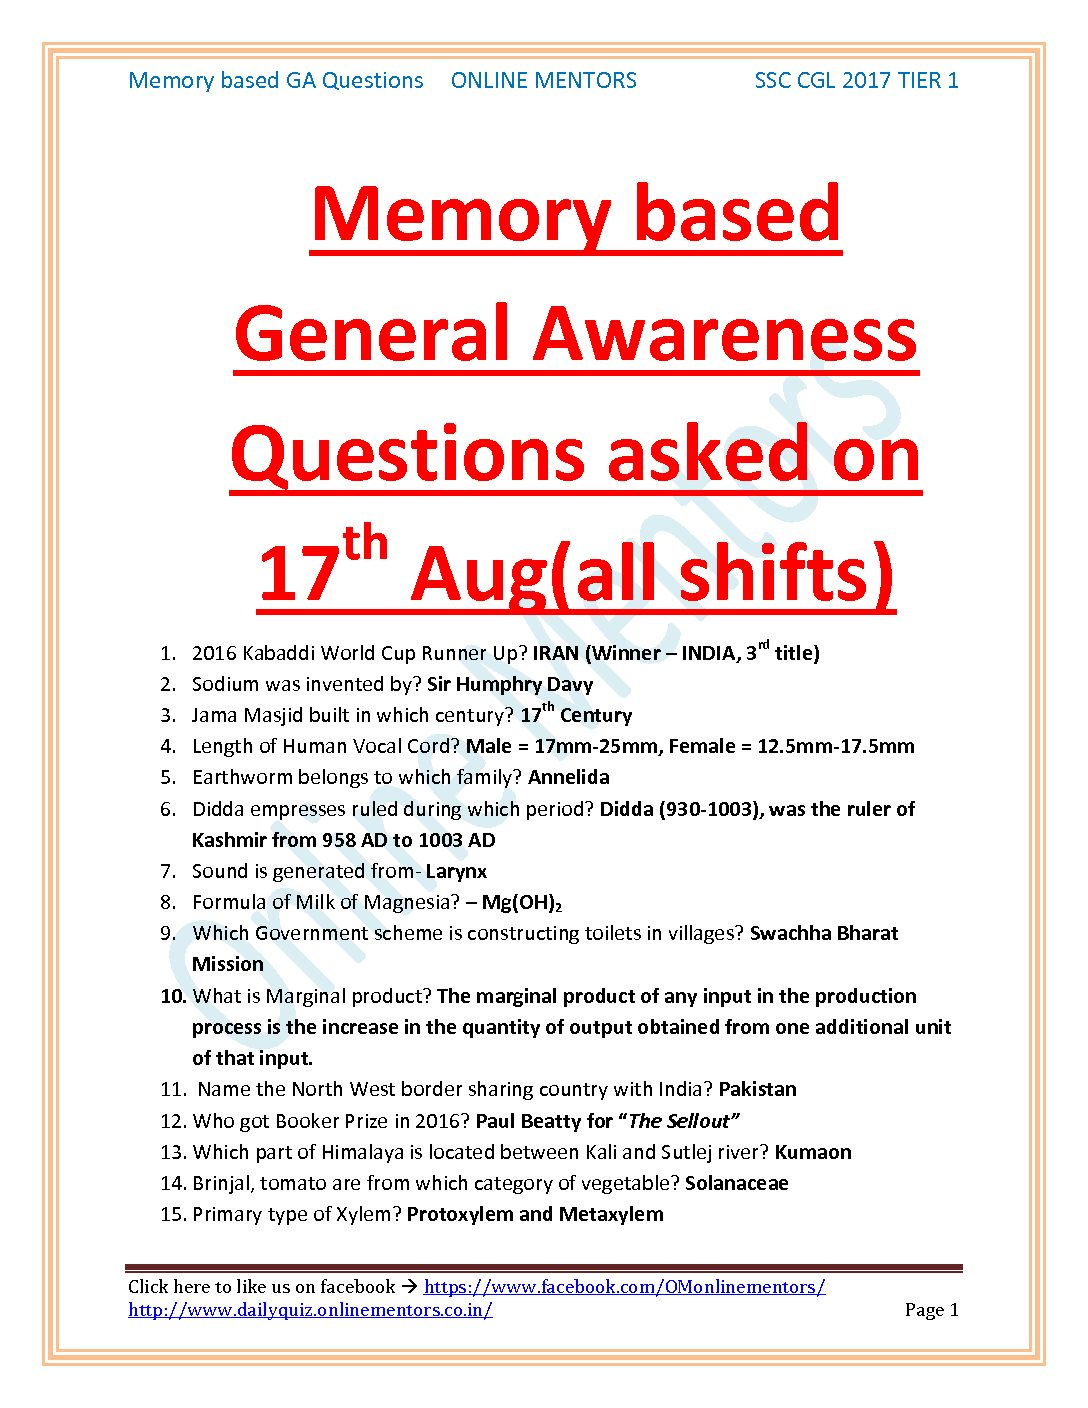 17 Aug SSC CGL 2017 Memory based GK questions